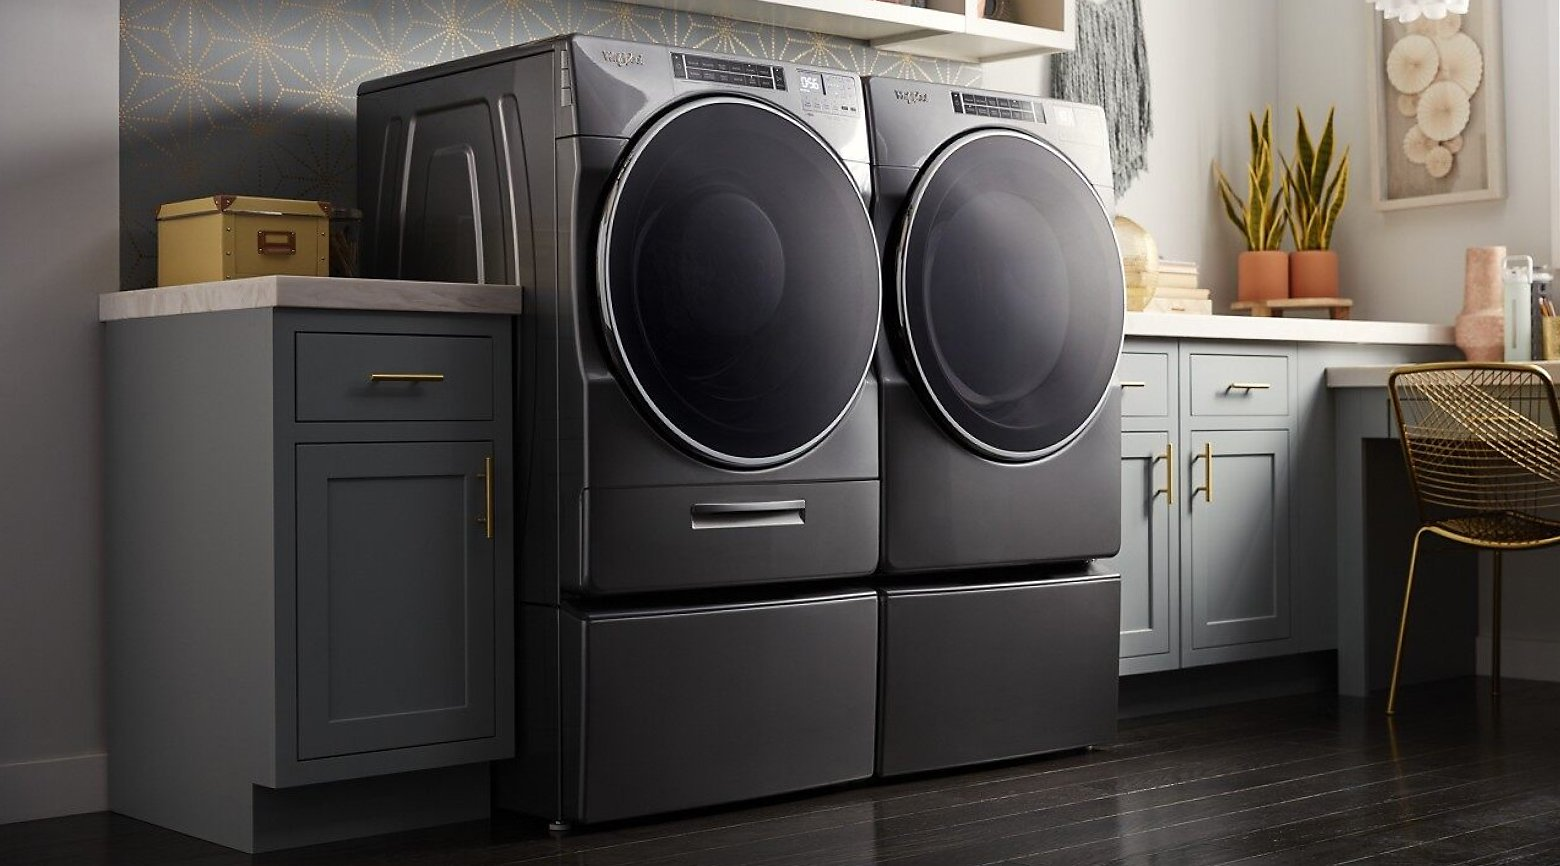 A Whirlpool® Front Load Washer and Dryer